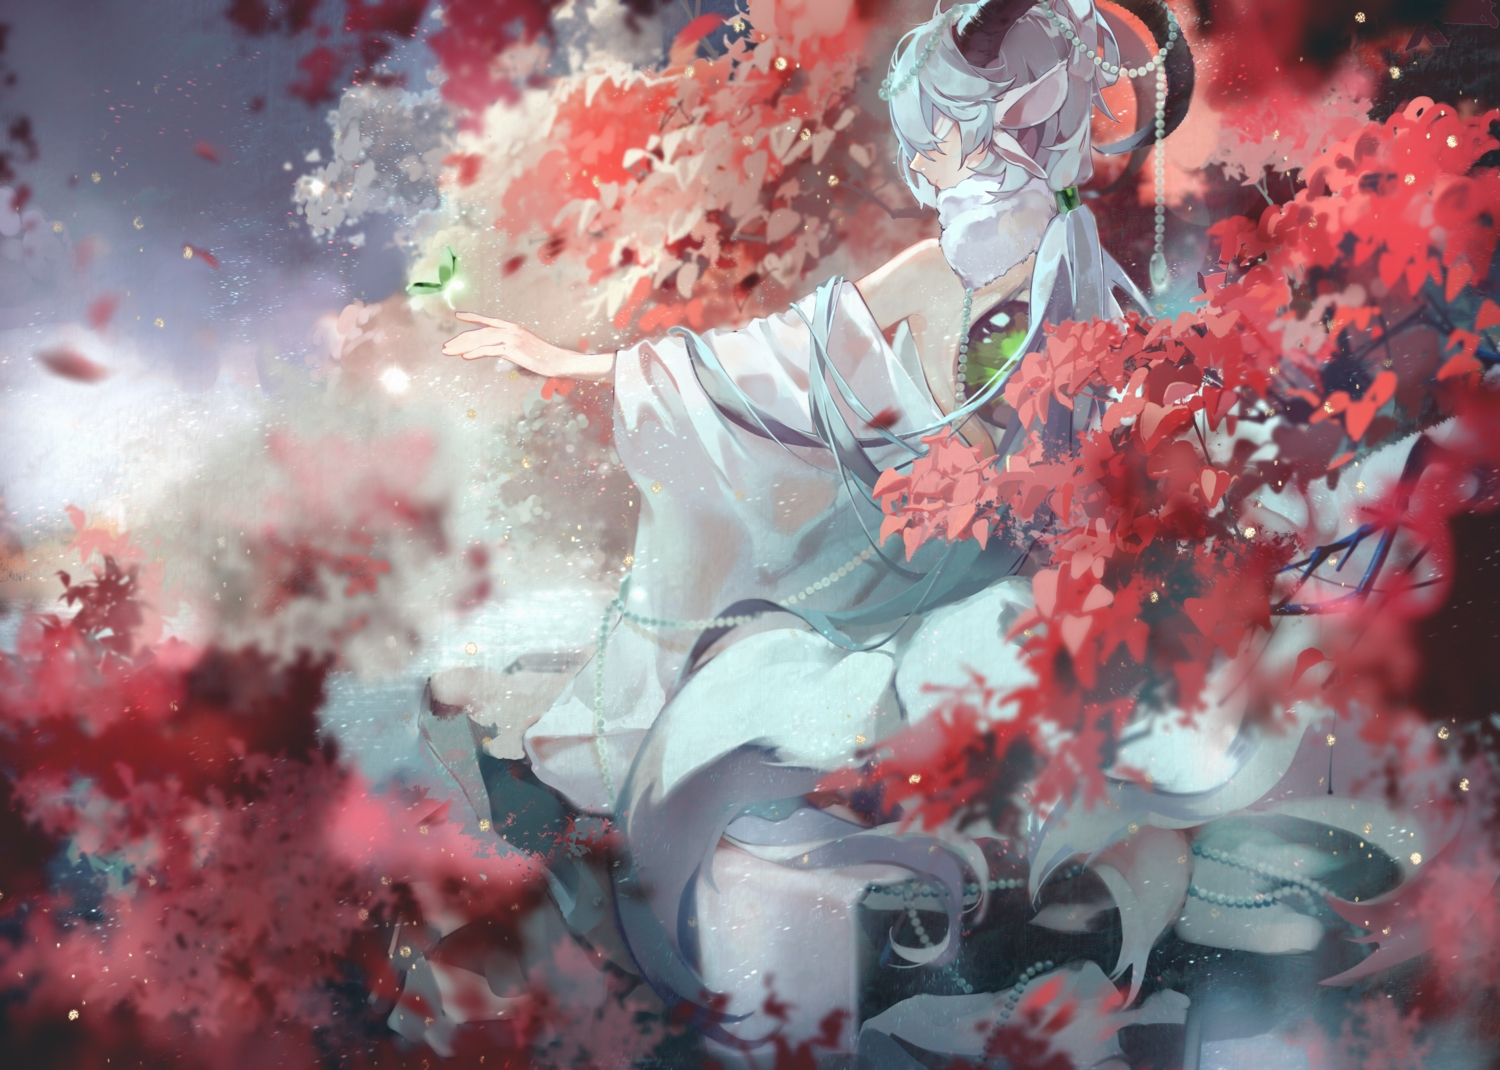 animal_ears blindfold horns leaves luo_tianyi mikka620 multiple_tails tail vocaloid vsinger